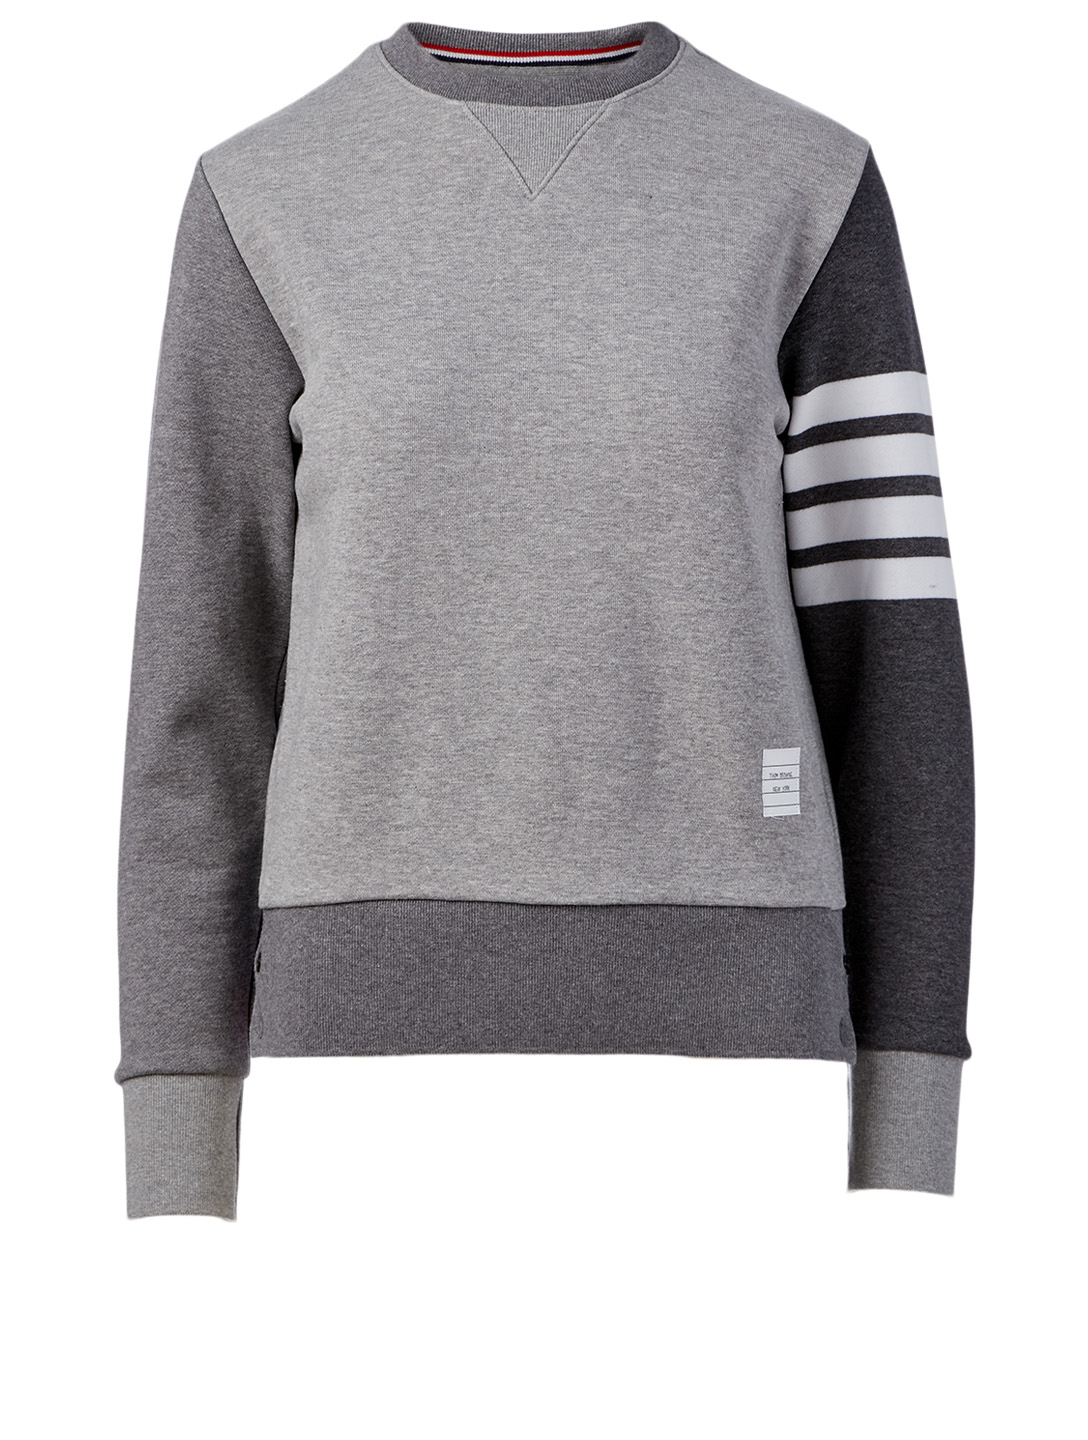 THOM BROWNE Crewneck Four-Bar Sweatshirt Women's Grey